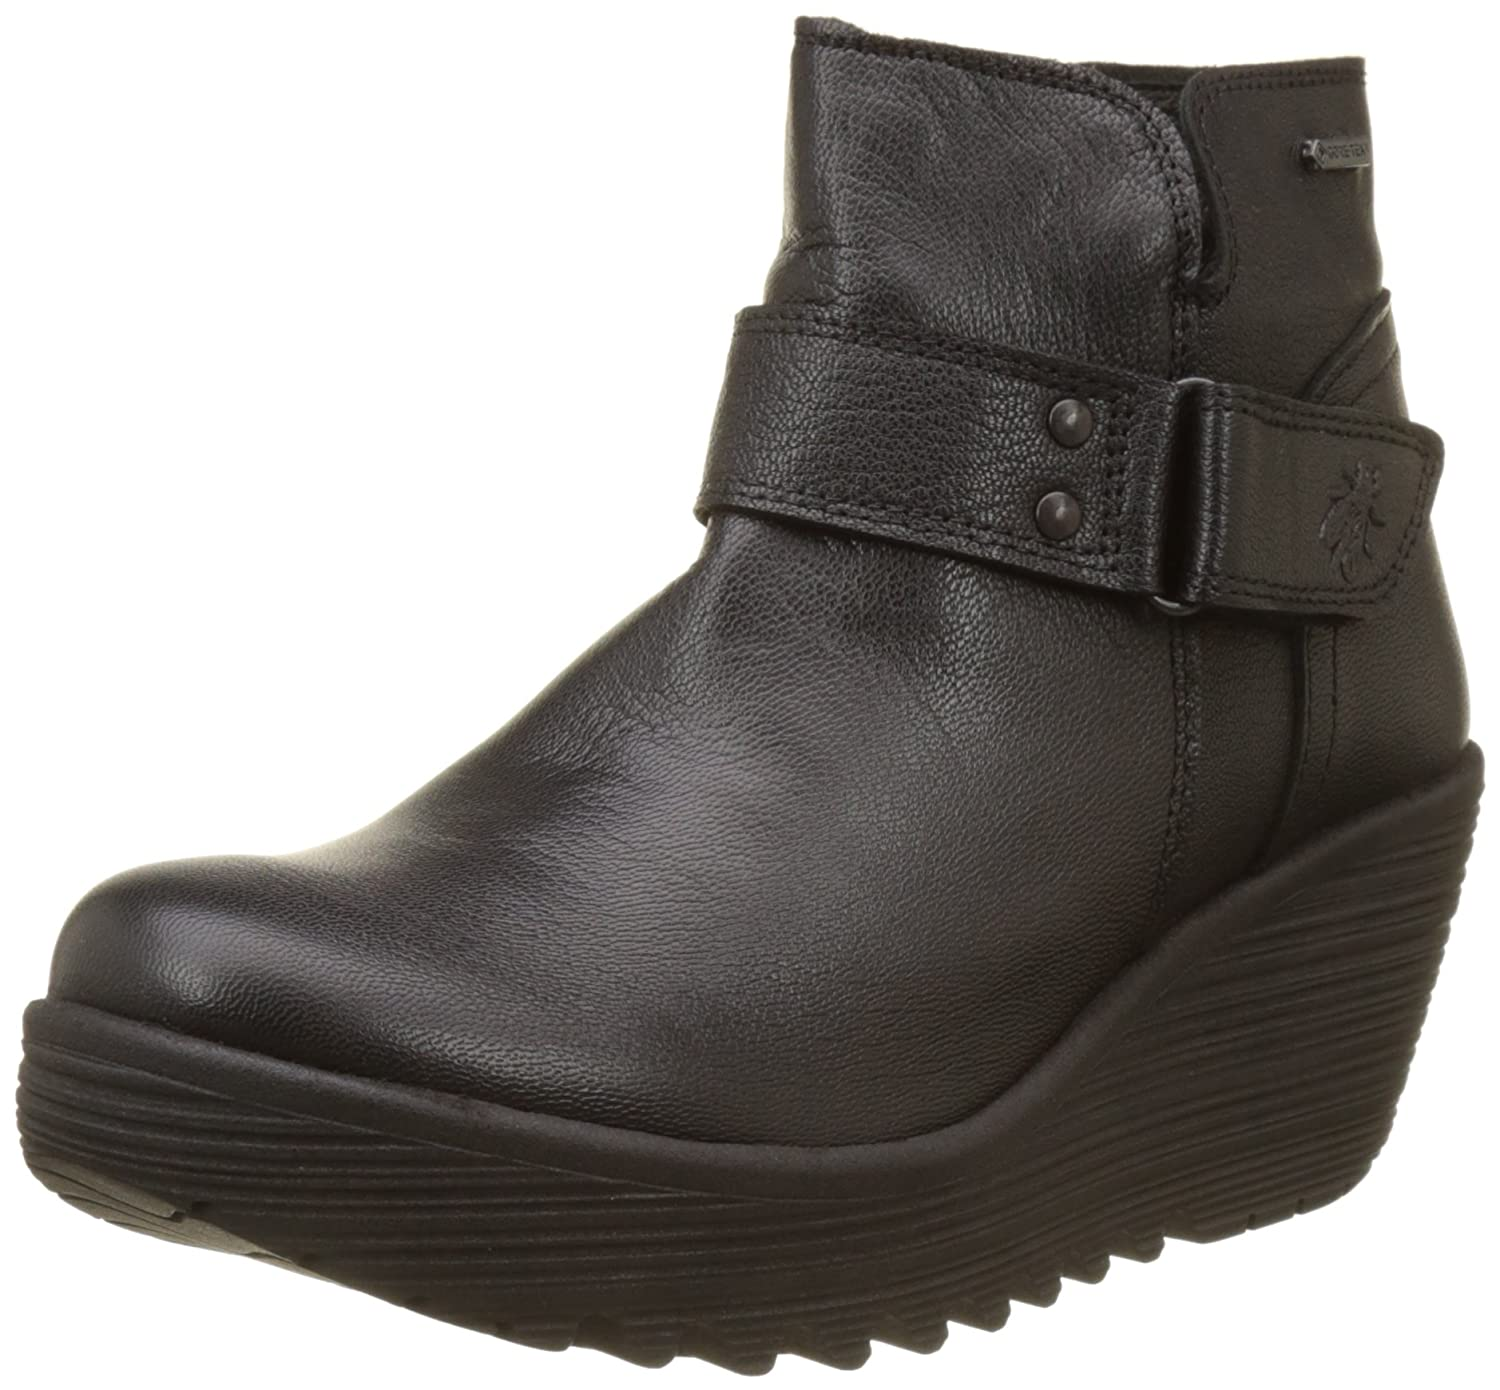 FLY London Women's Yock062fly Mid Calf Boot B06WWMYJ16 38 M EU (7.5-8 US)|Black Mousse